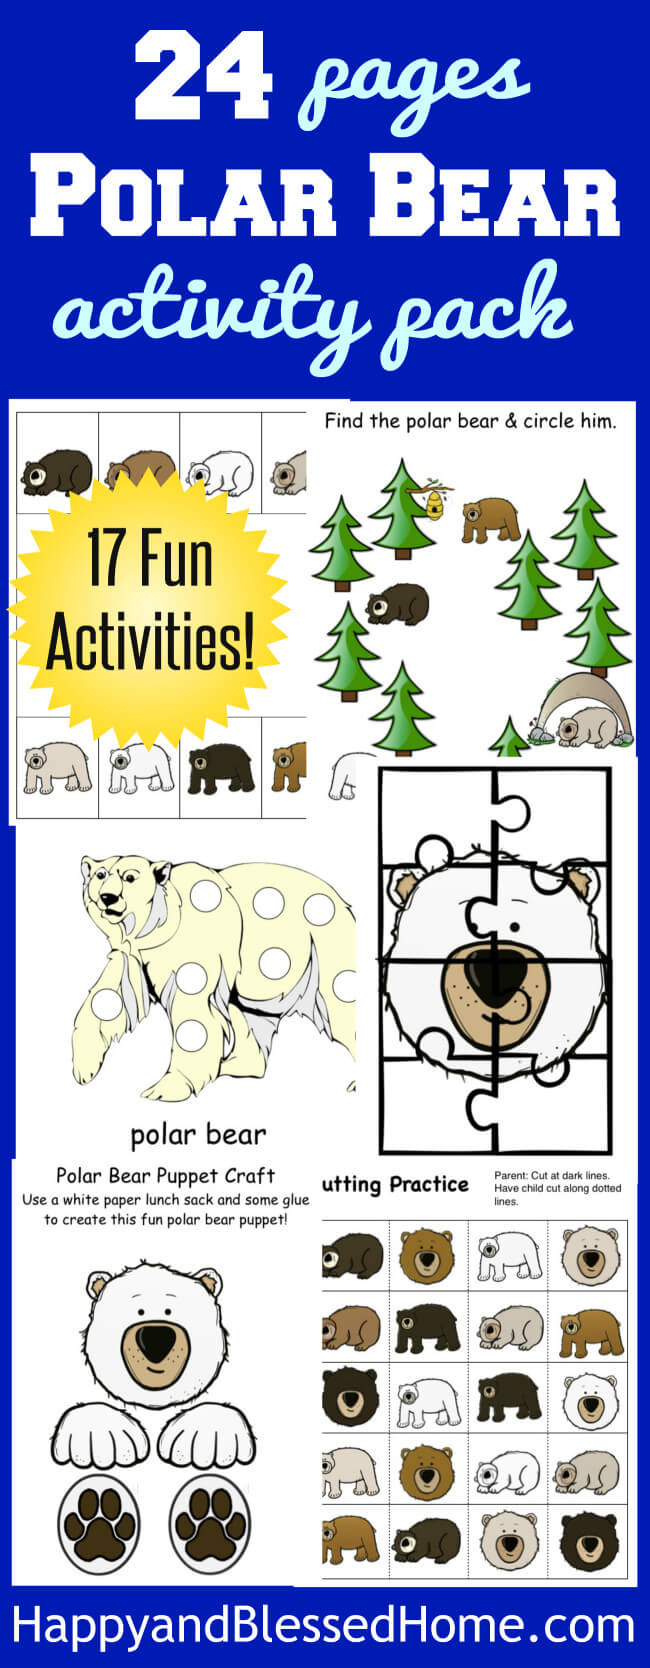 17 Fun Activities for Kids in this 24 Pages of Polar Bear Activities Pack